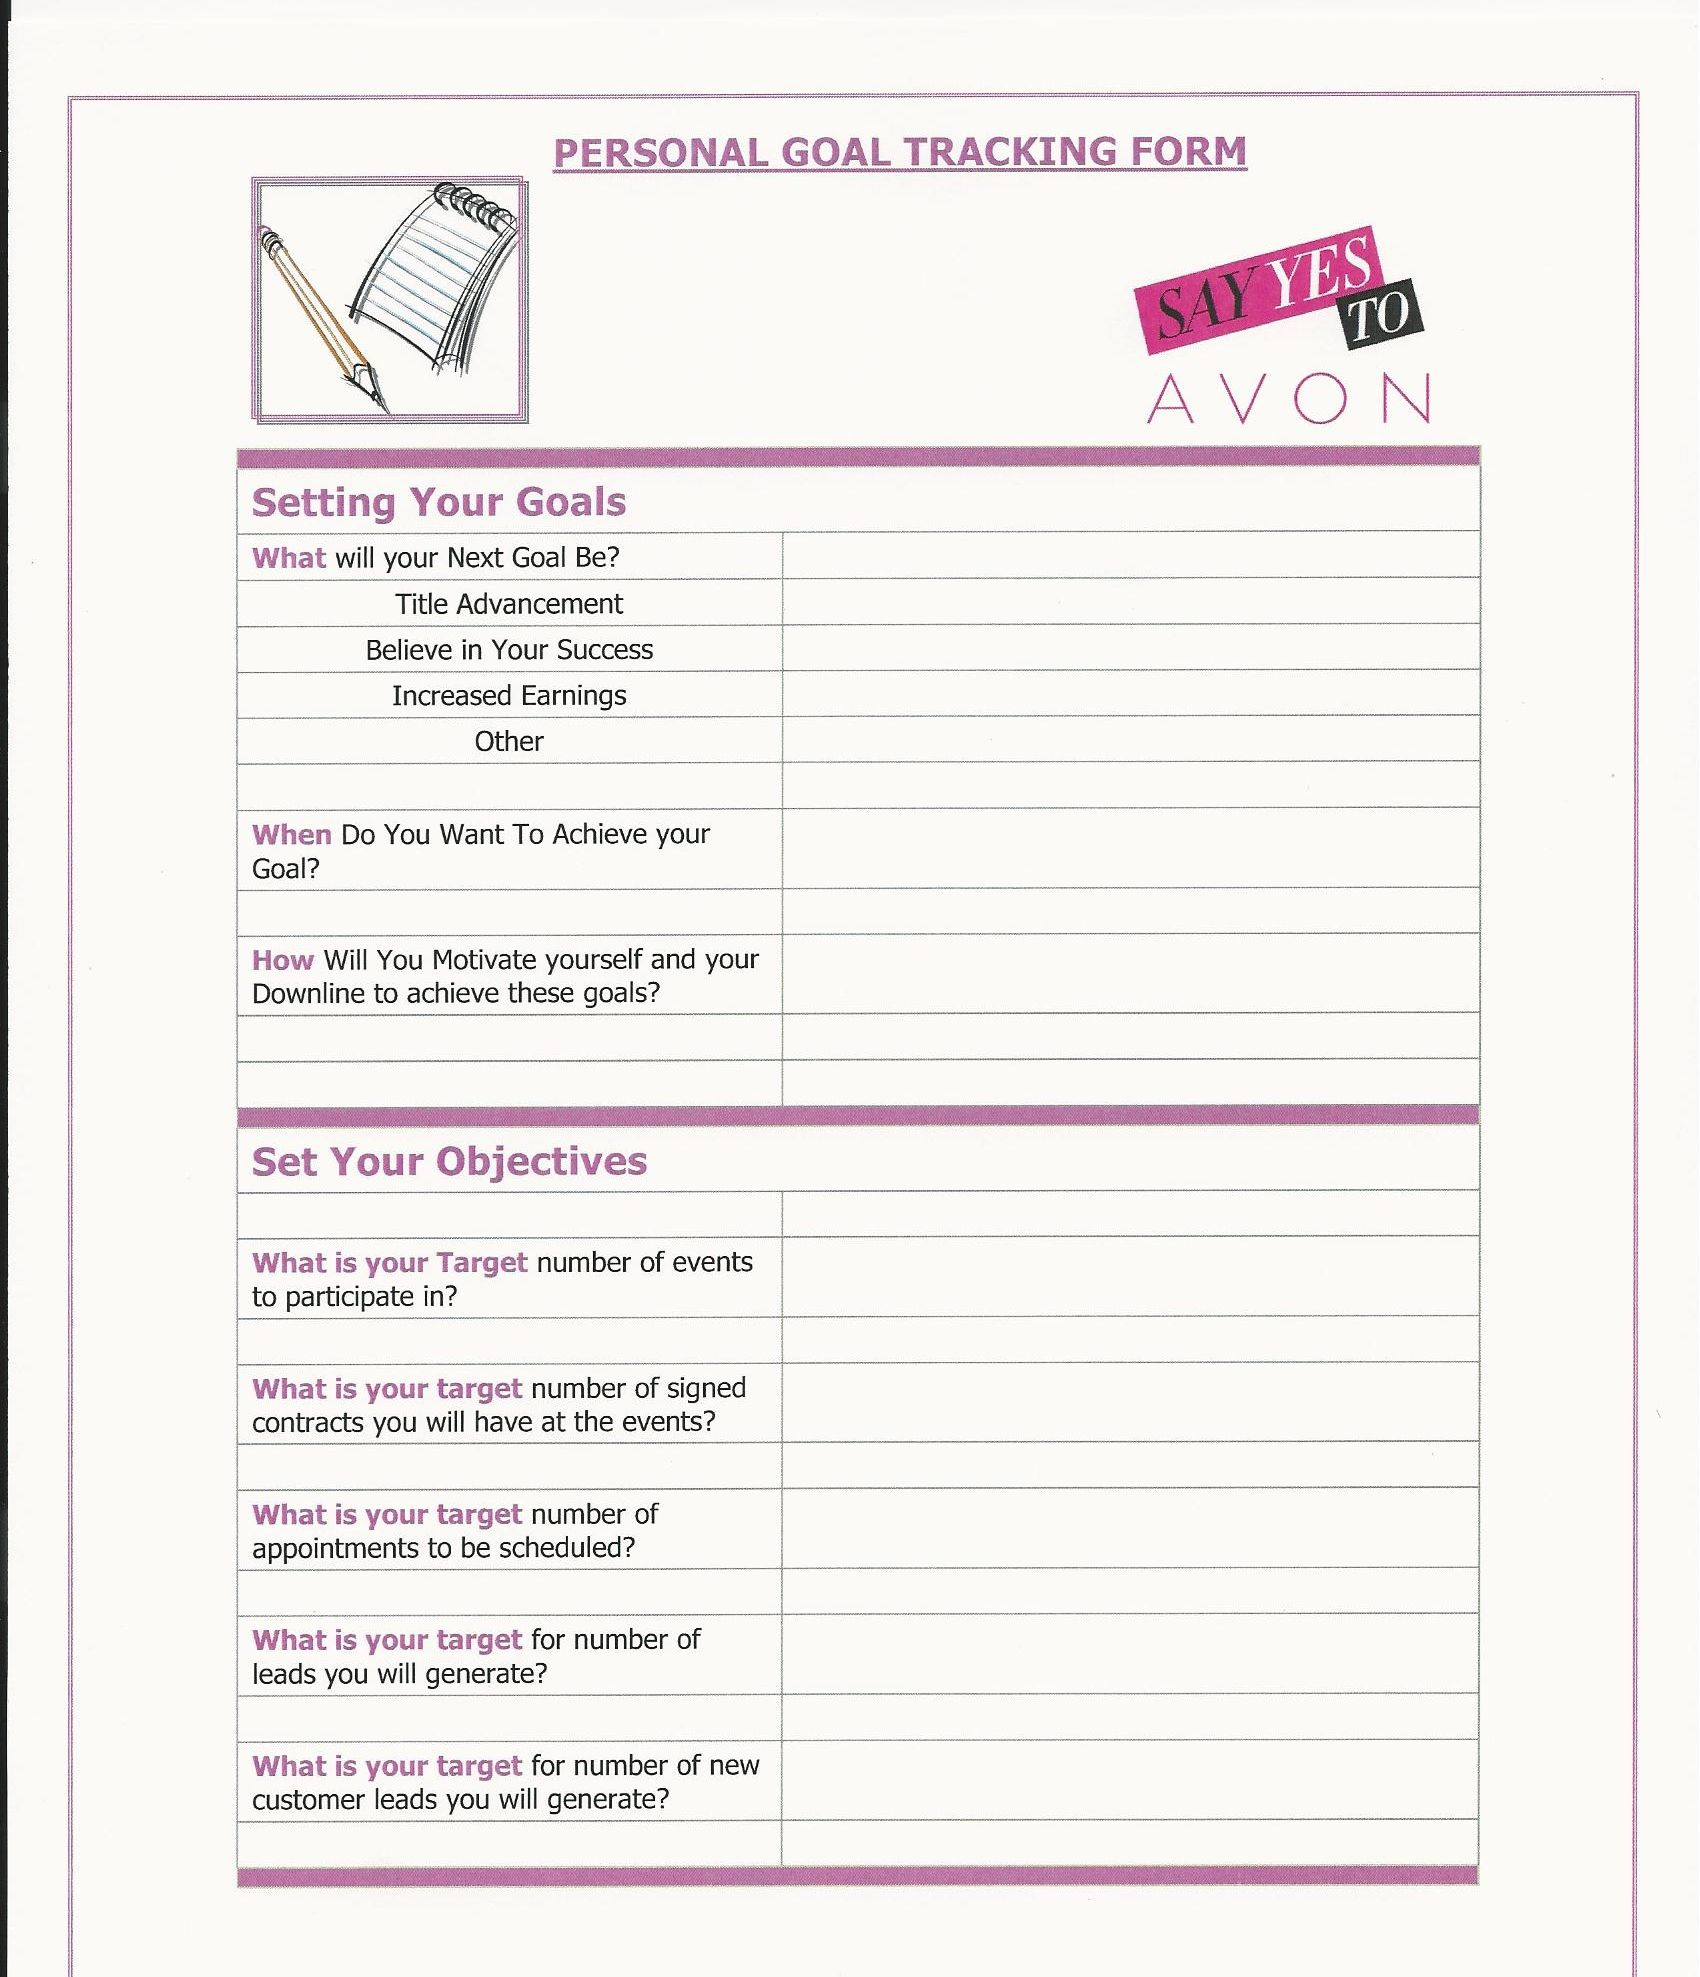 Avon Personal Goal Tracking Form With Images